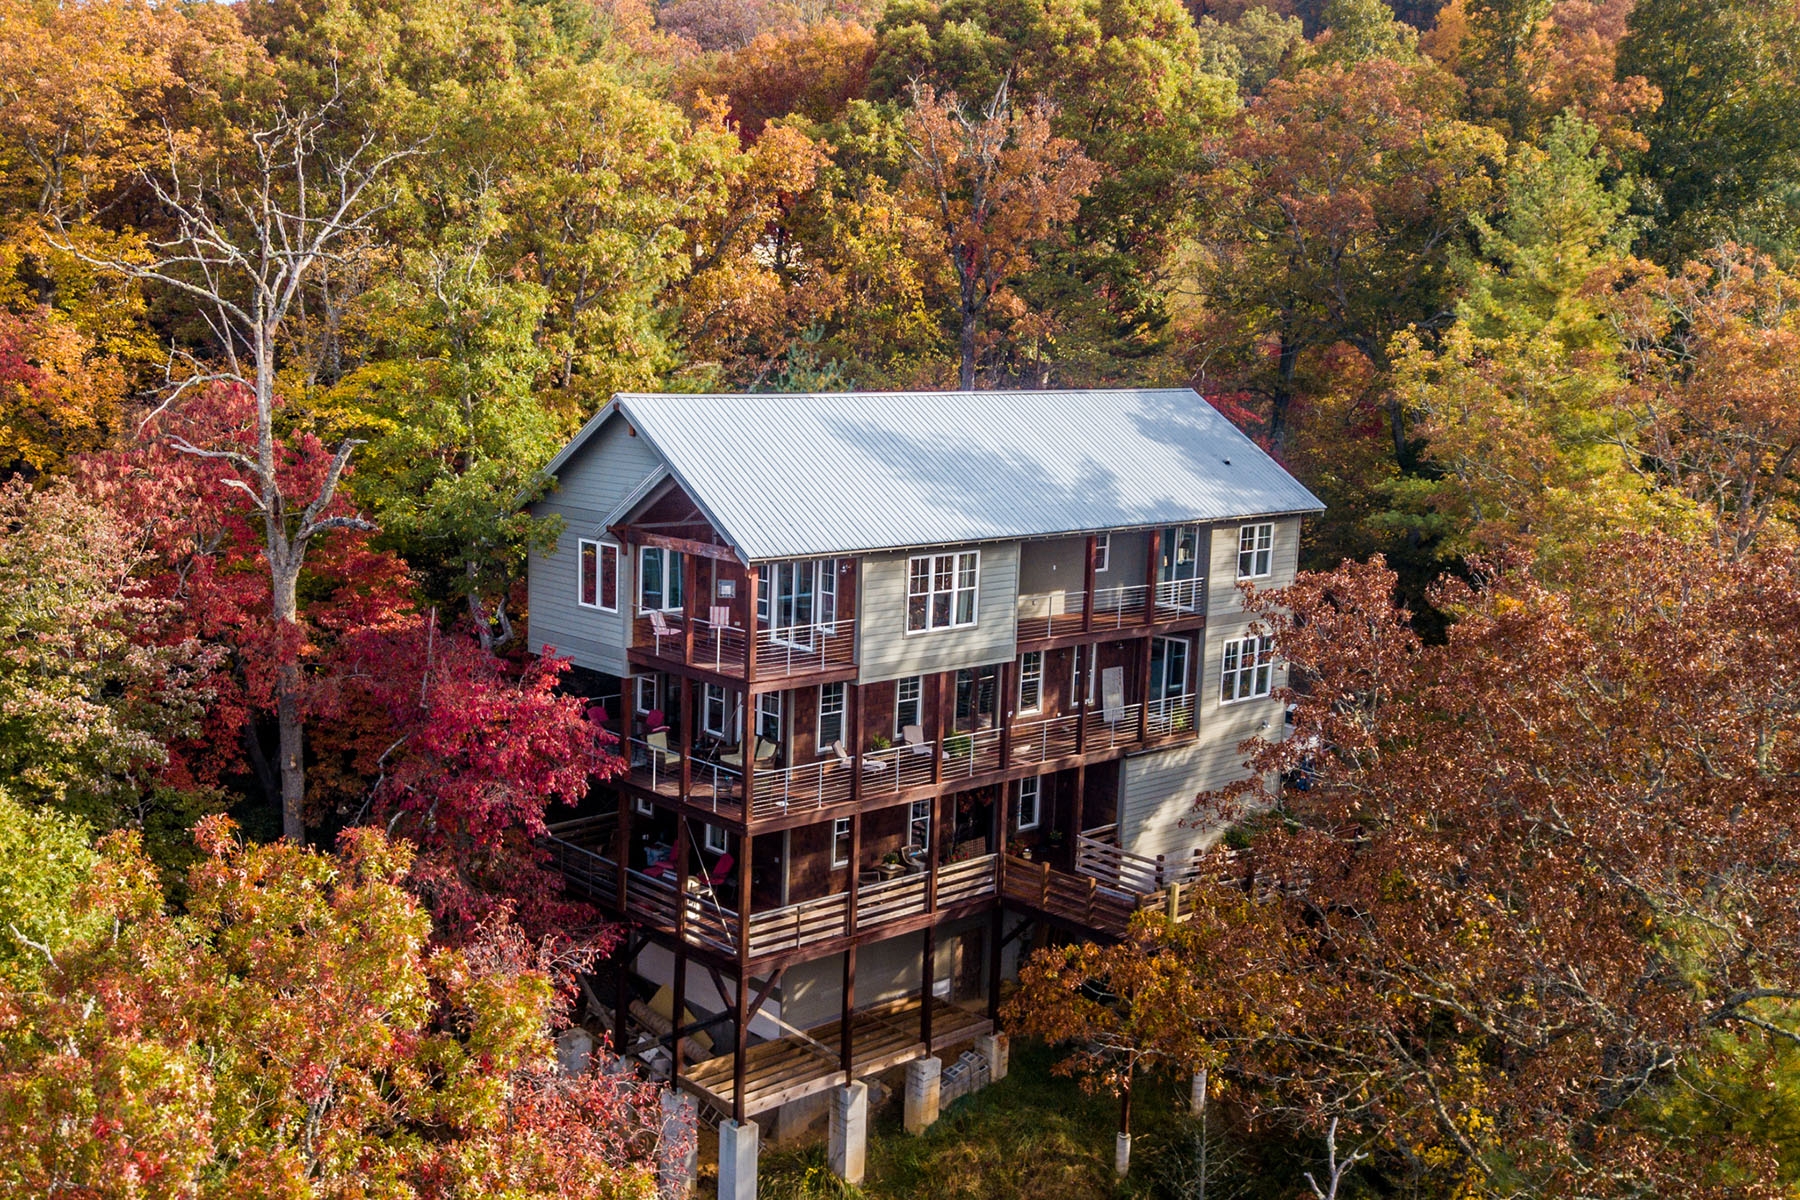 Single Family Homes for Sale at 84 Old Cove Rd Black Mountain, North Carolina 28711 United States